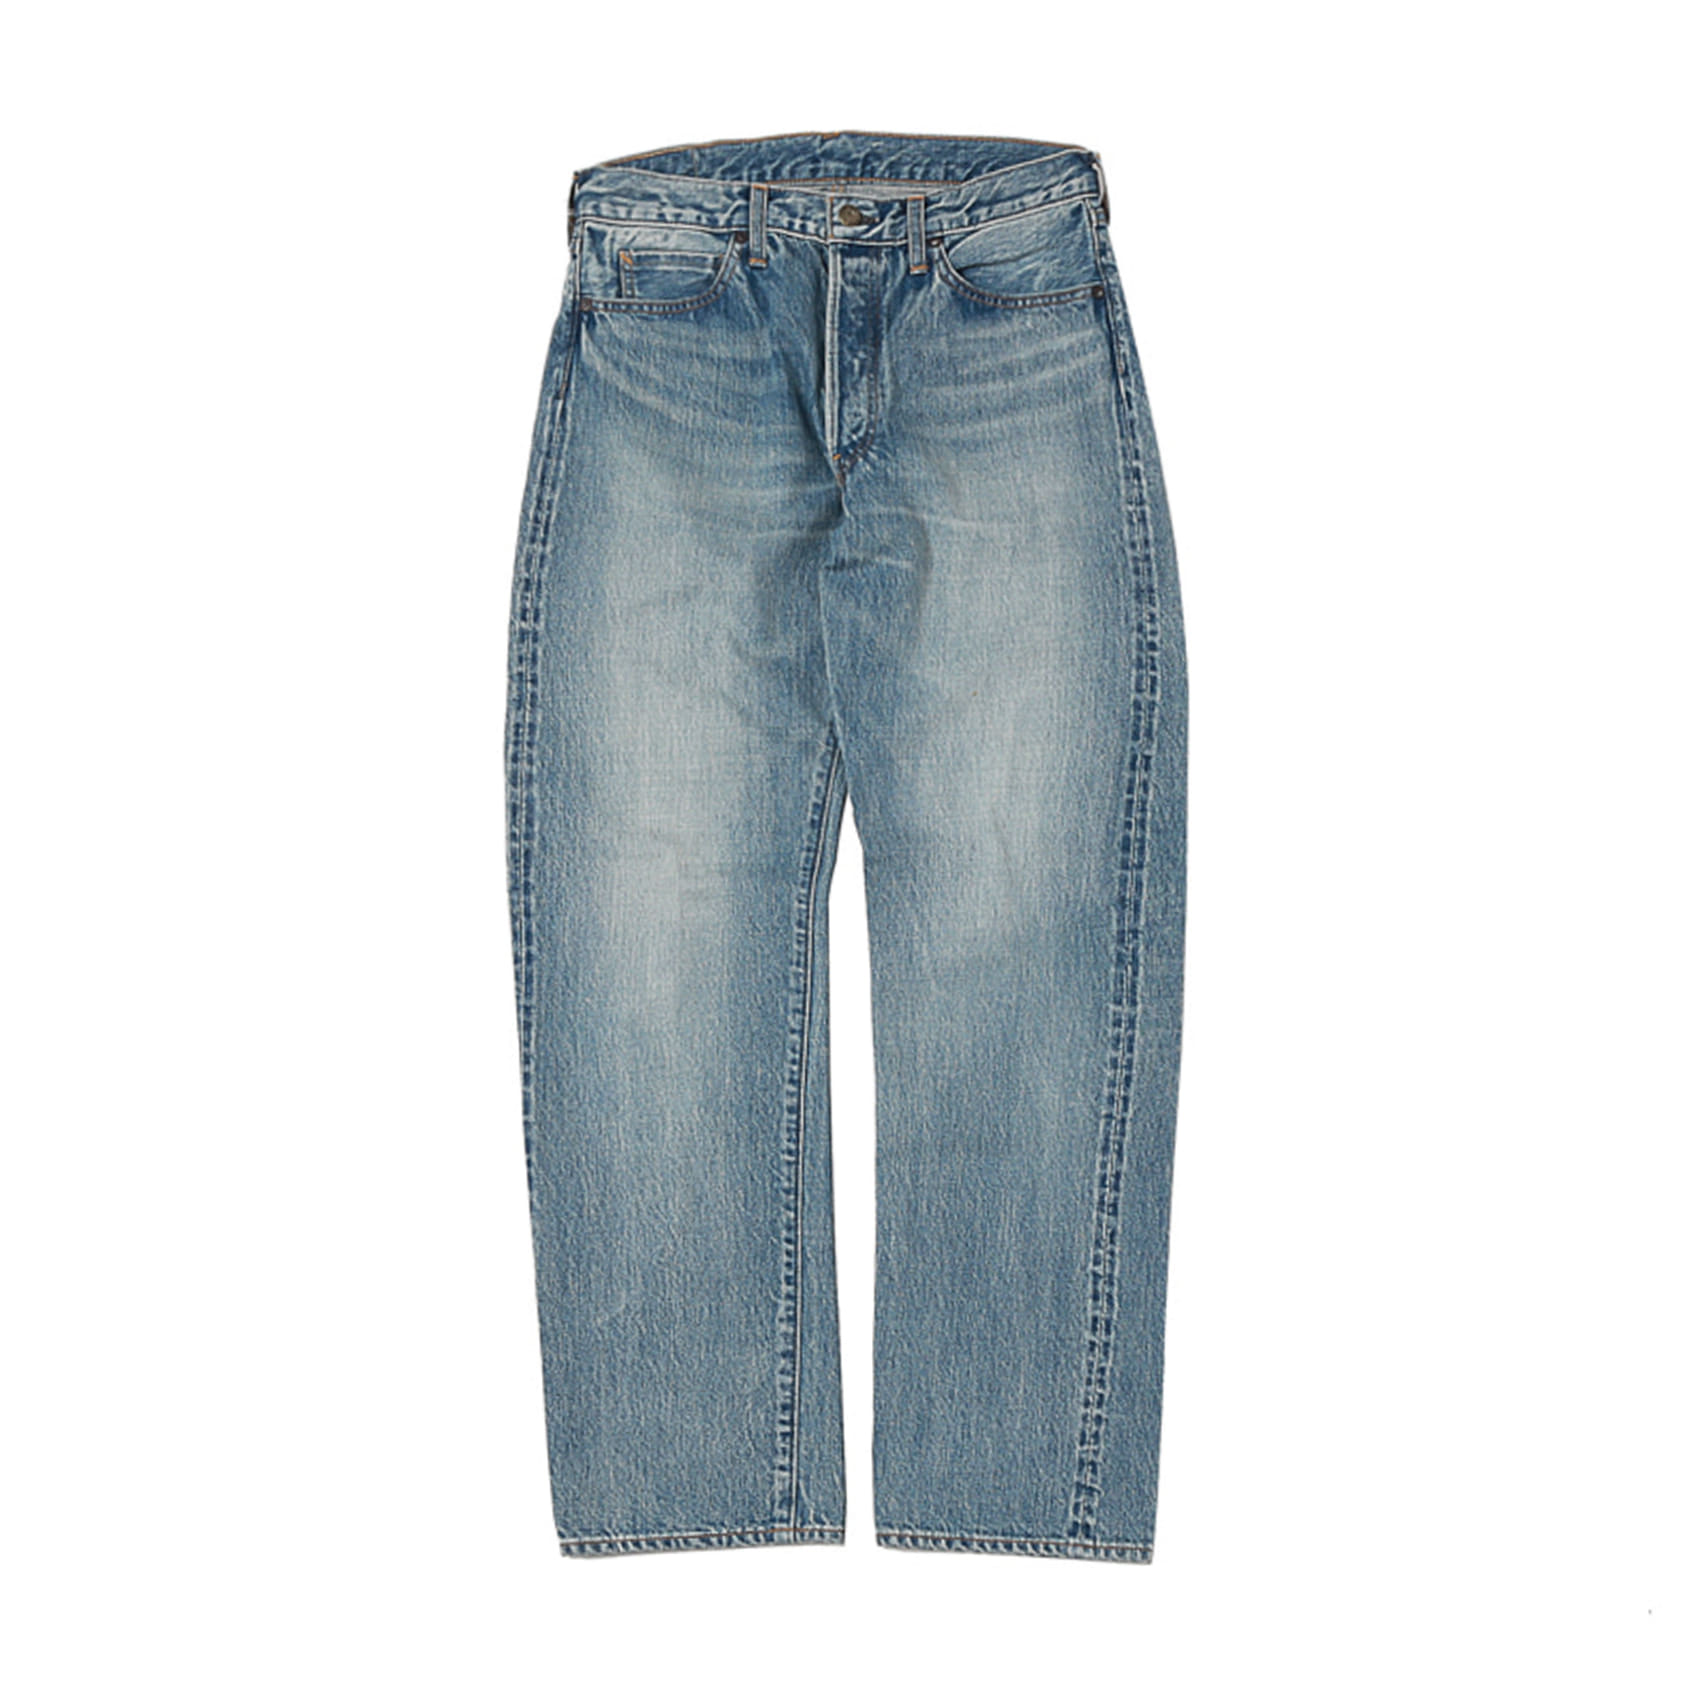 5 POCKET DENIM PANTS 901 66 - VINTAGE WASH